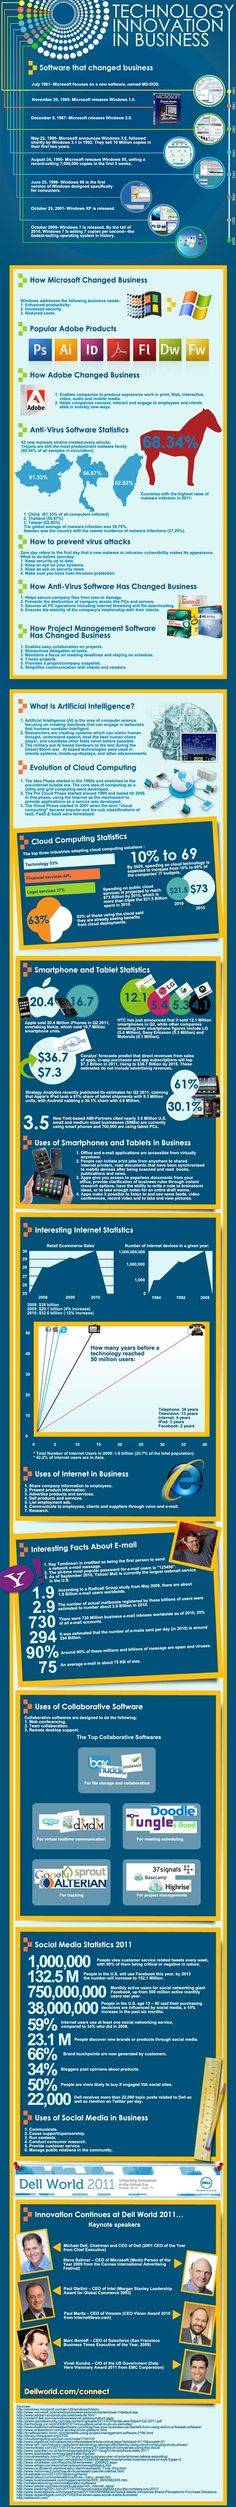 Technology Innovation in Business #Infographic #Dell